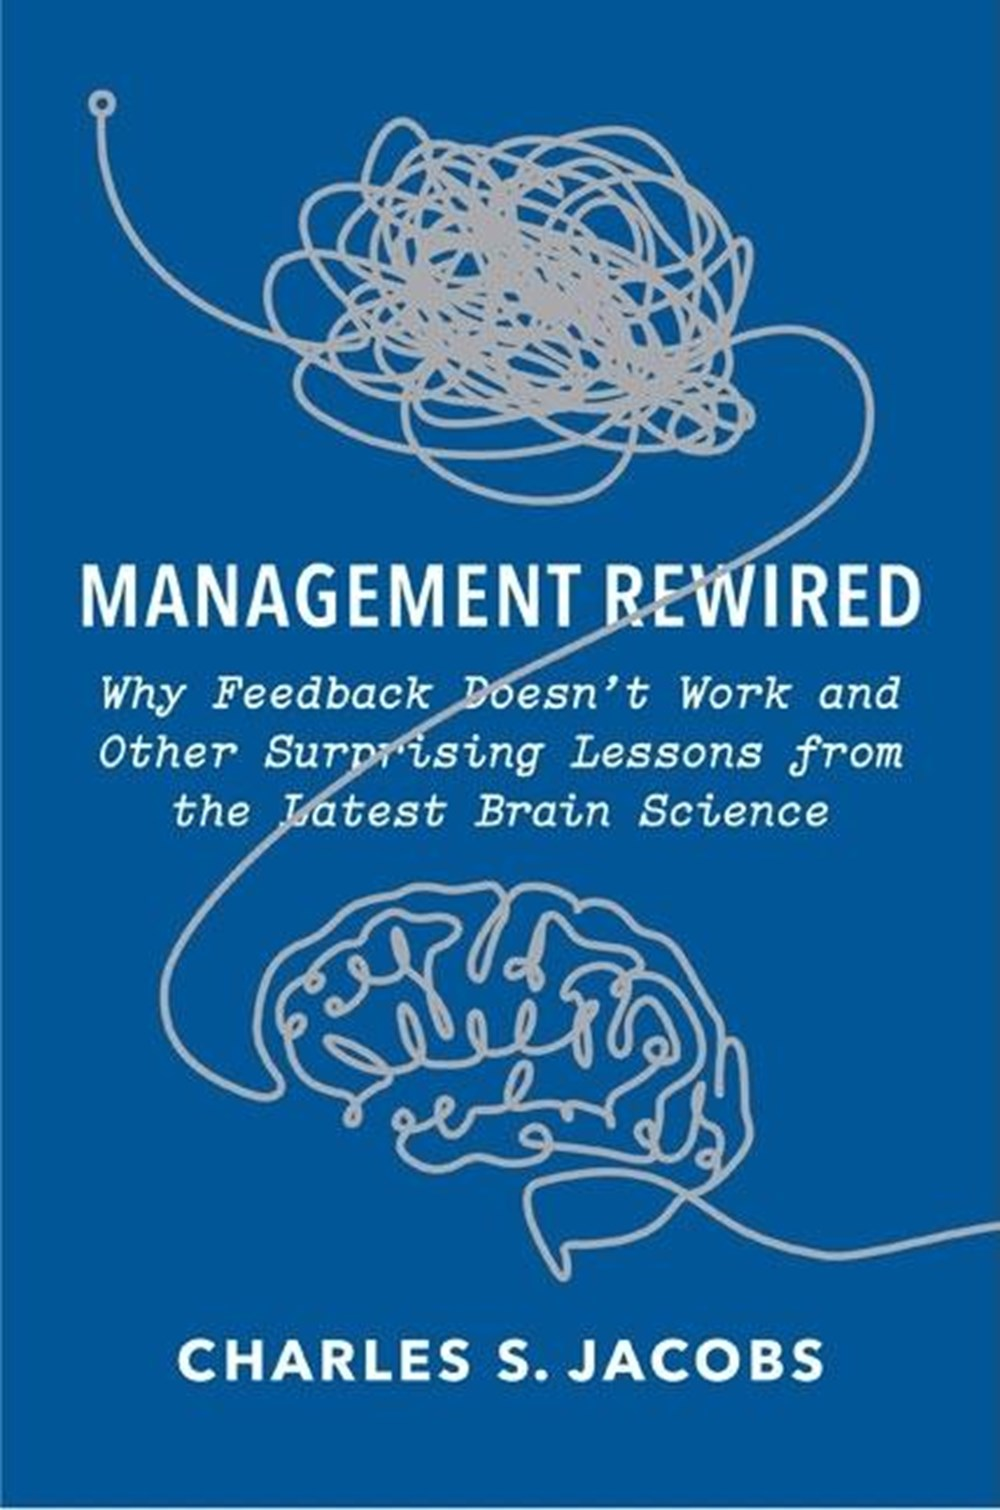 Management Rewired Why Feedback Doesn't Work and Other Surprising Lessons from the Latest Brain Scie